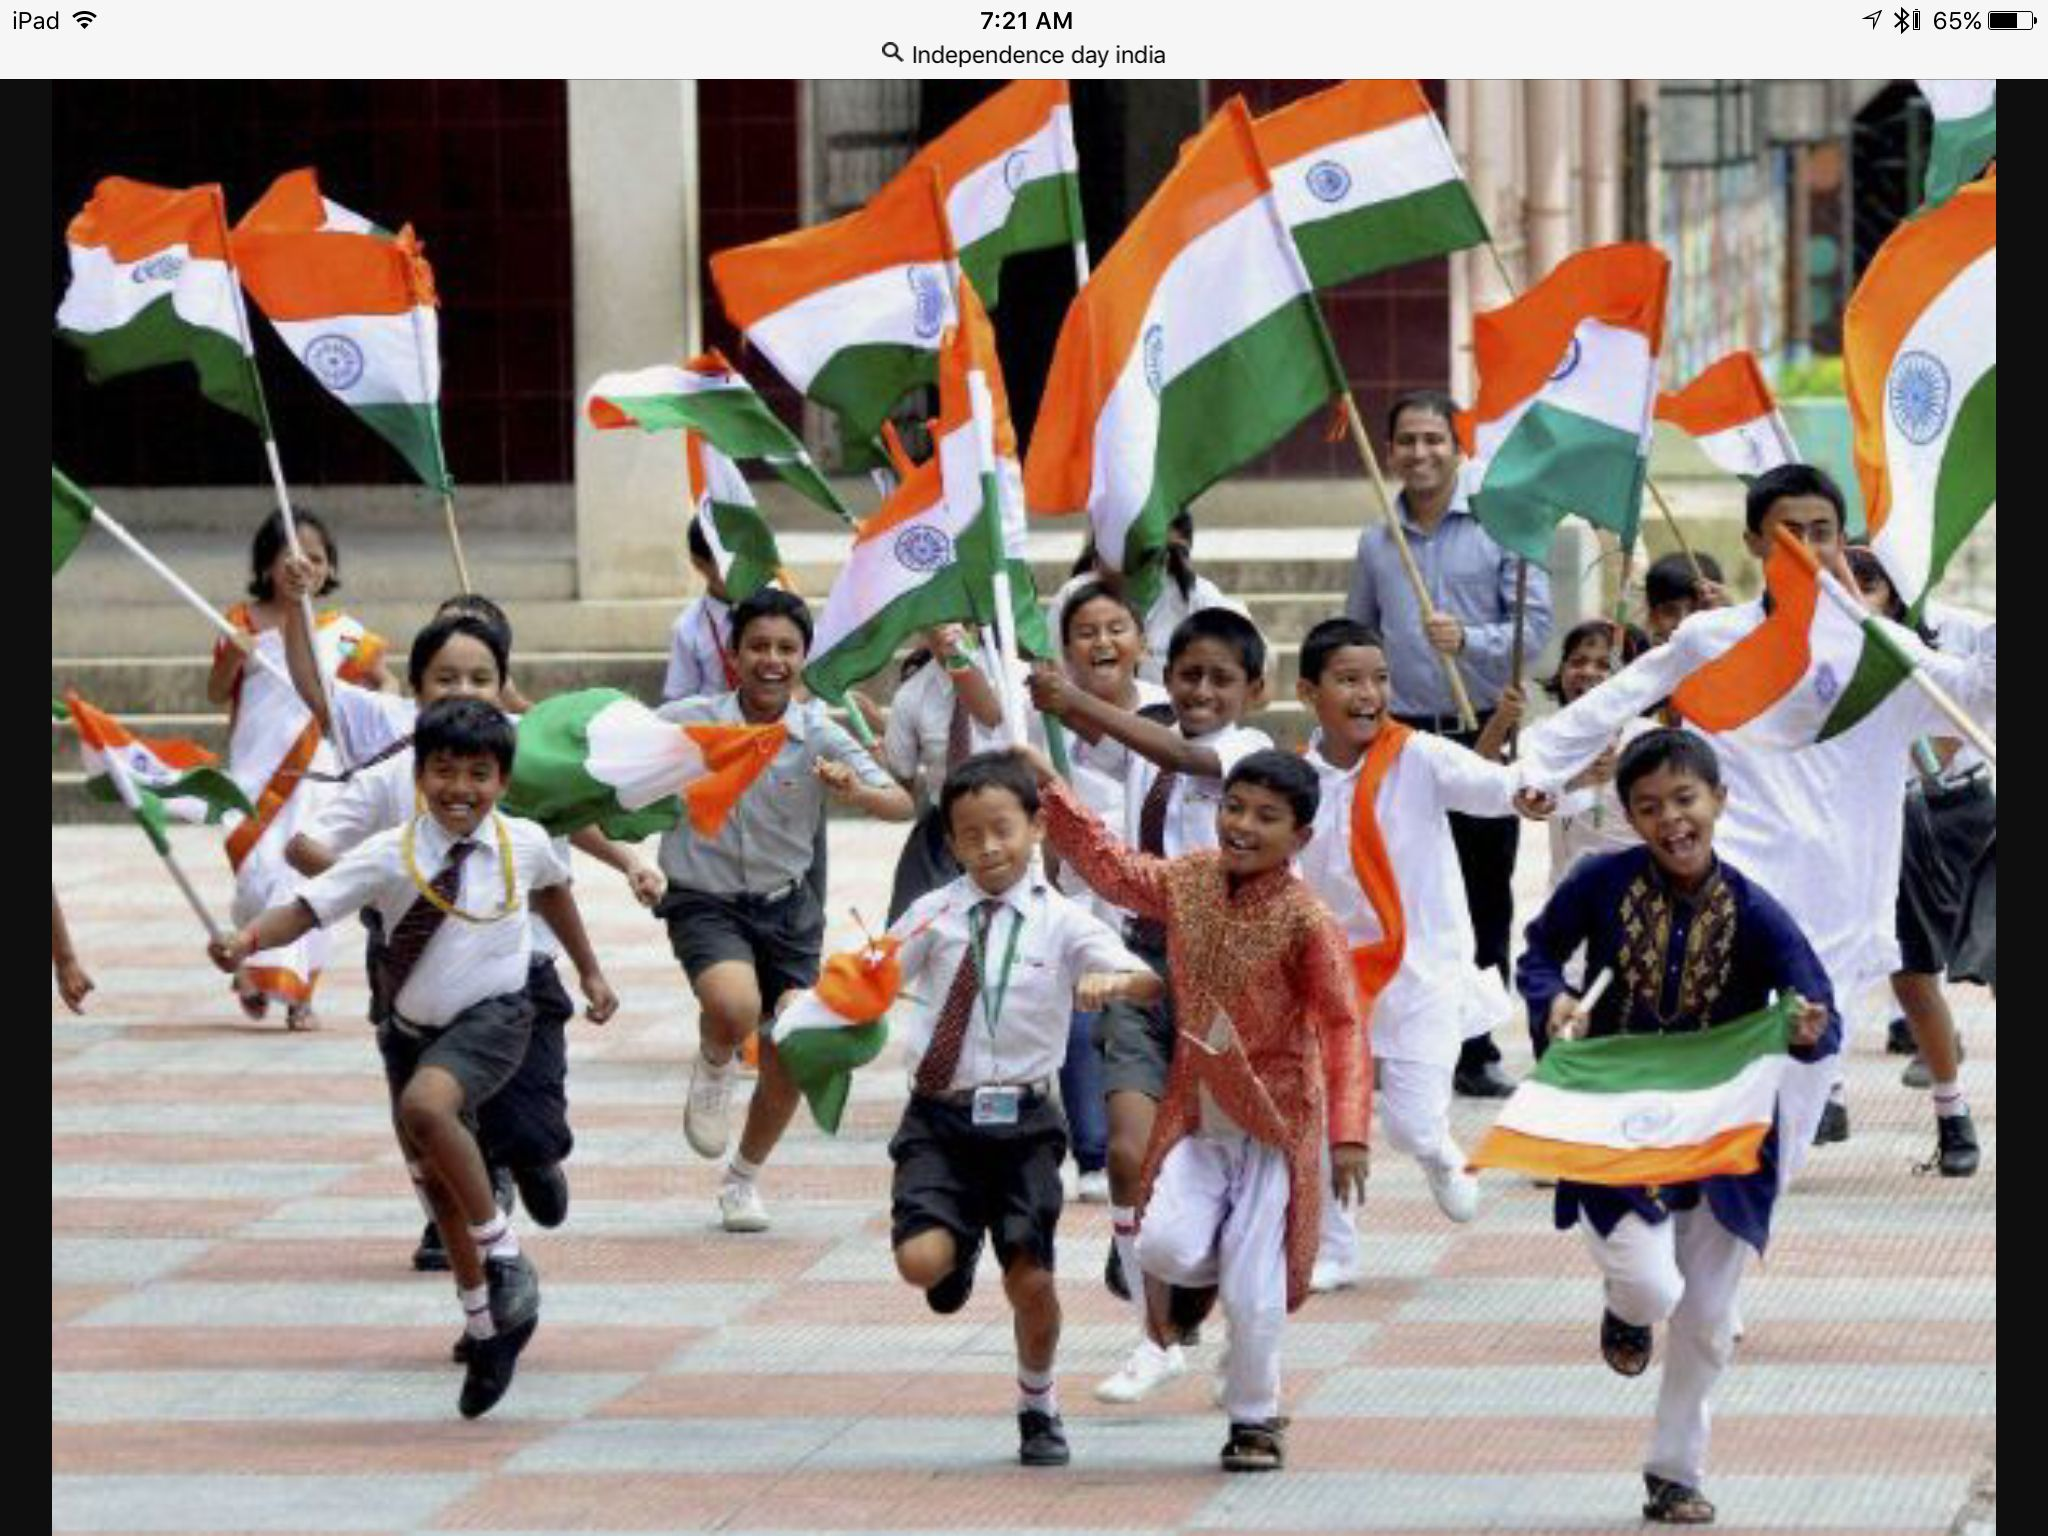 Flag Festival India: School Children Celebrating Indian Independence Day With